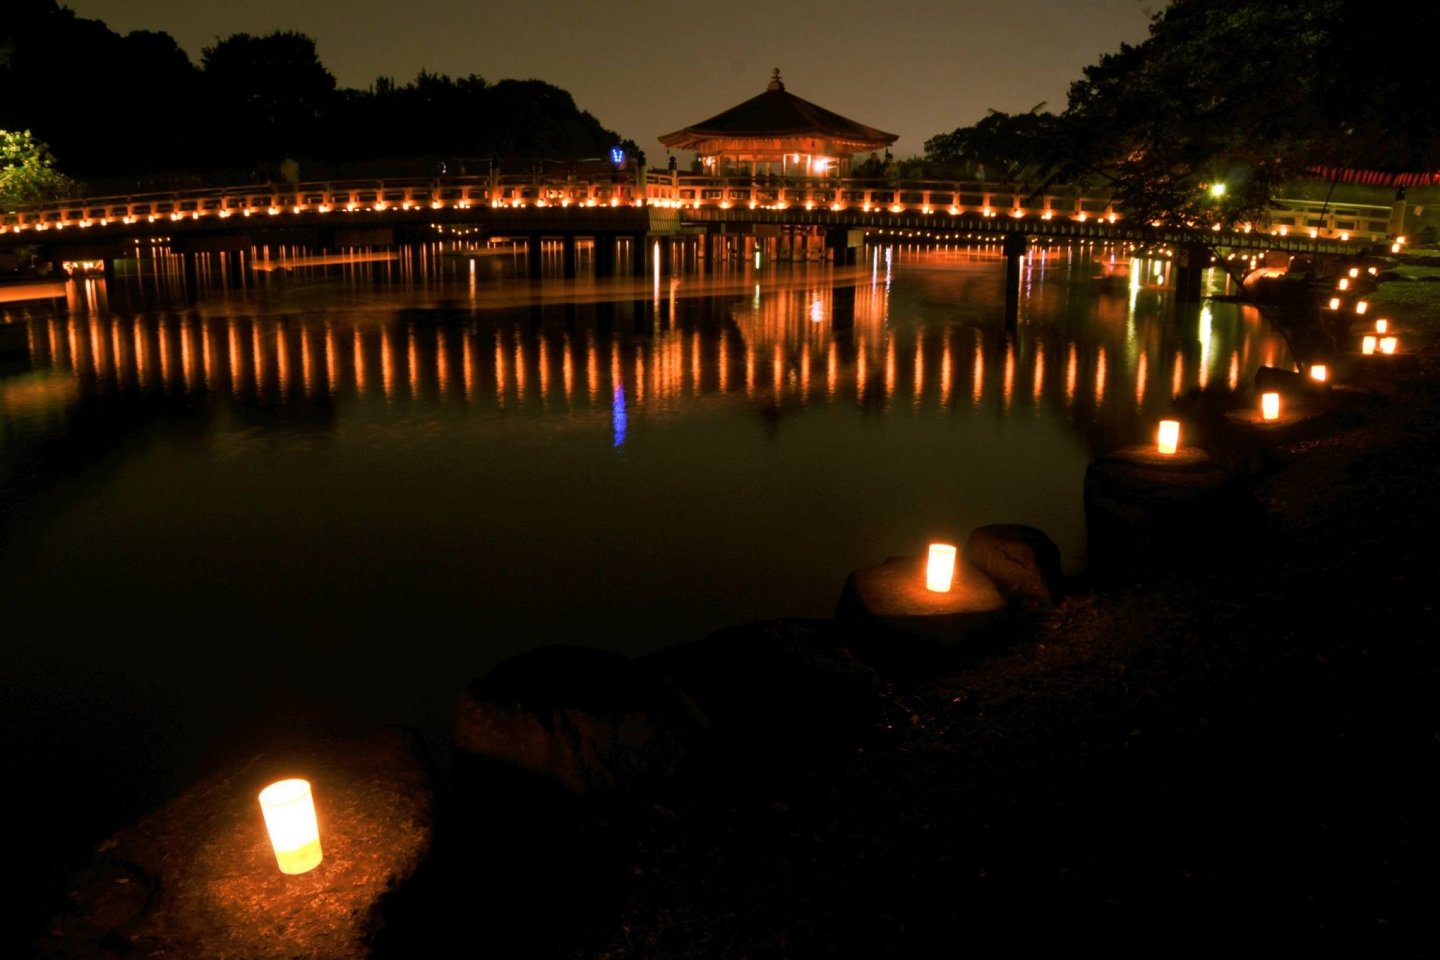 Lanterns from the Tokae and boats reflected in a pond in Nara Park